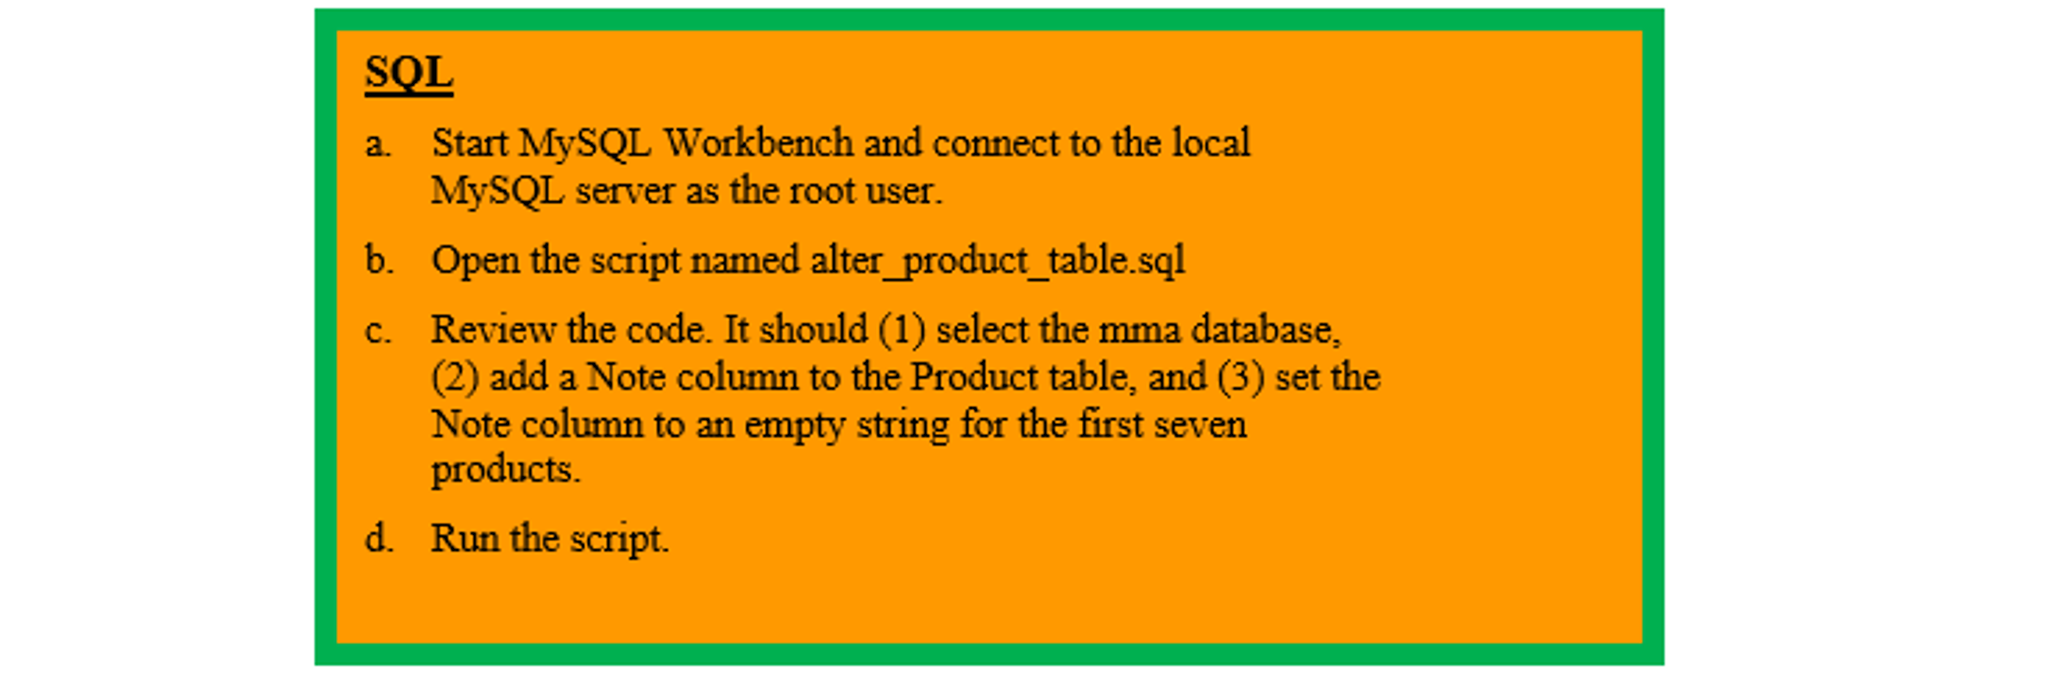 JAVA With Netbeans USE Mma